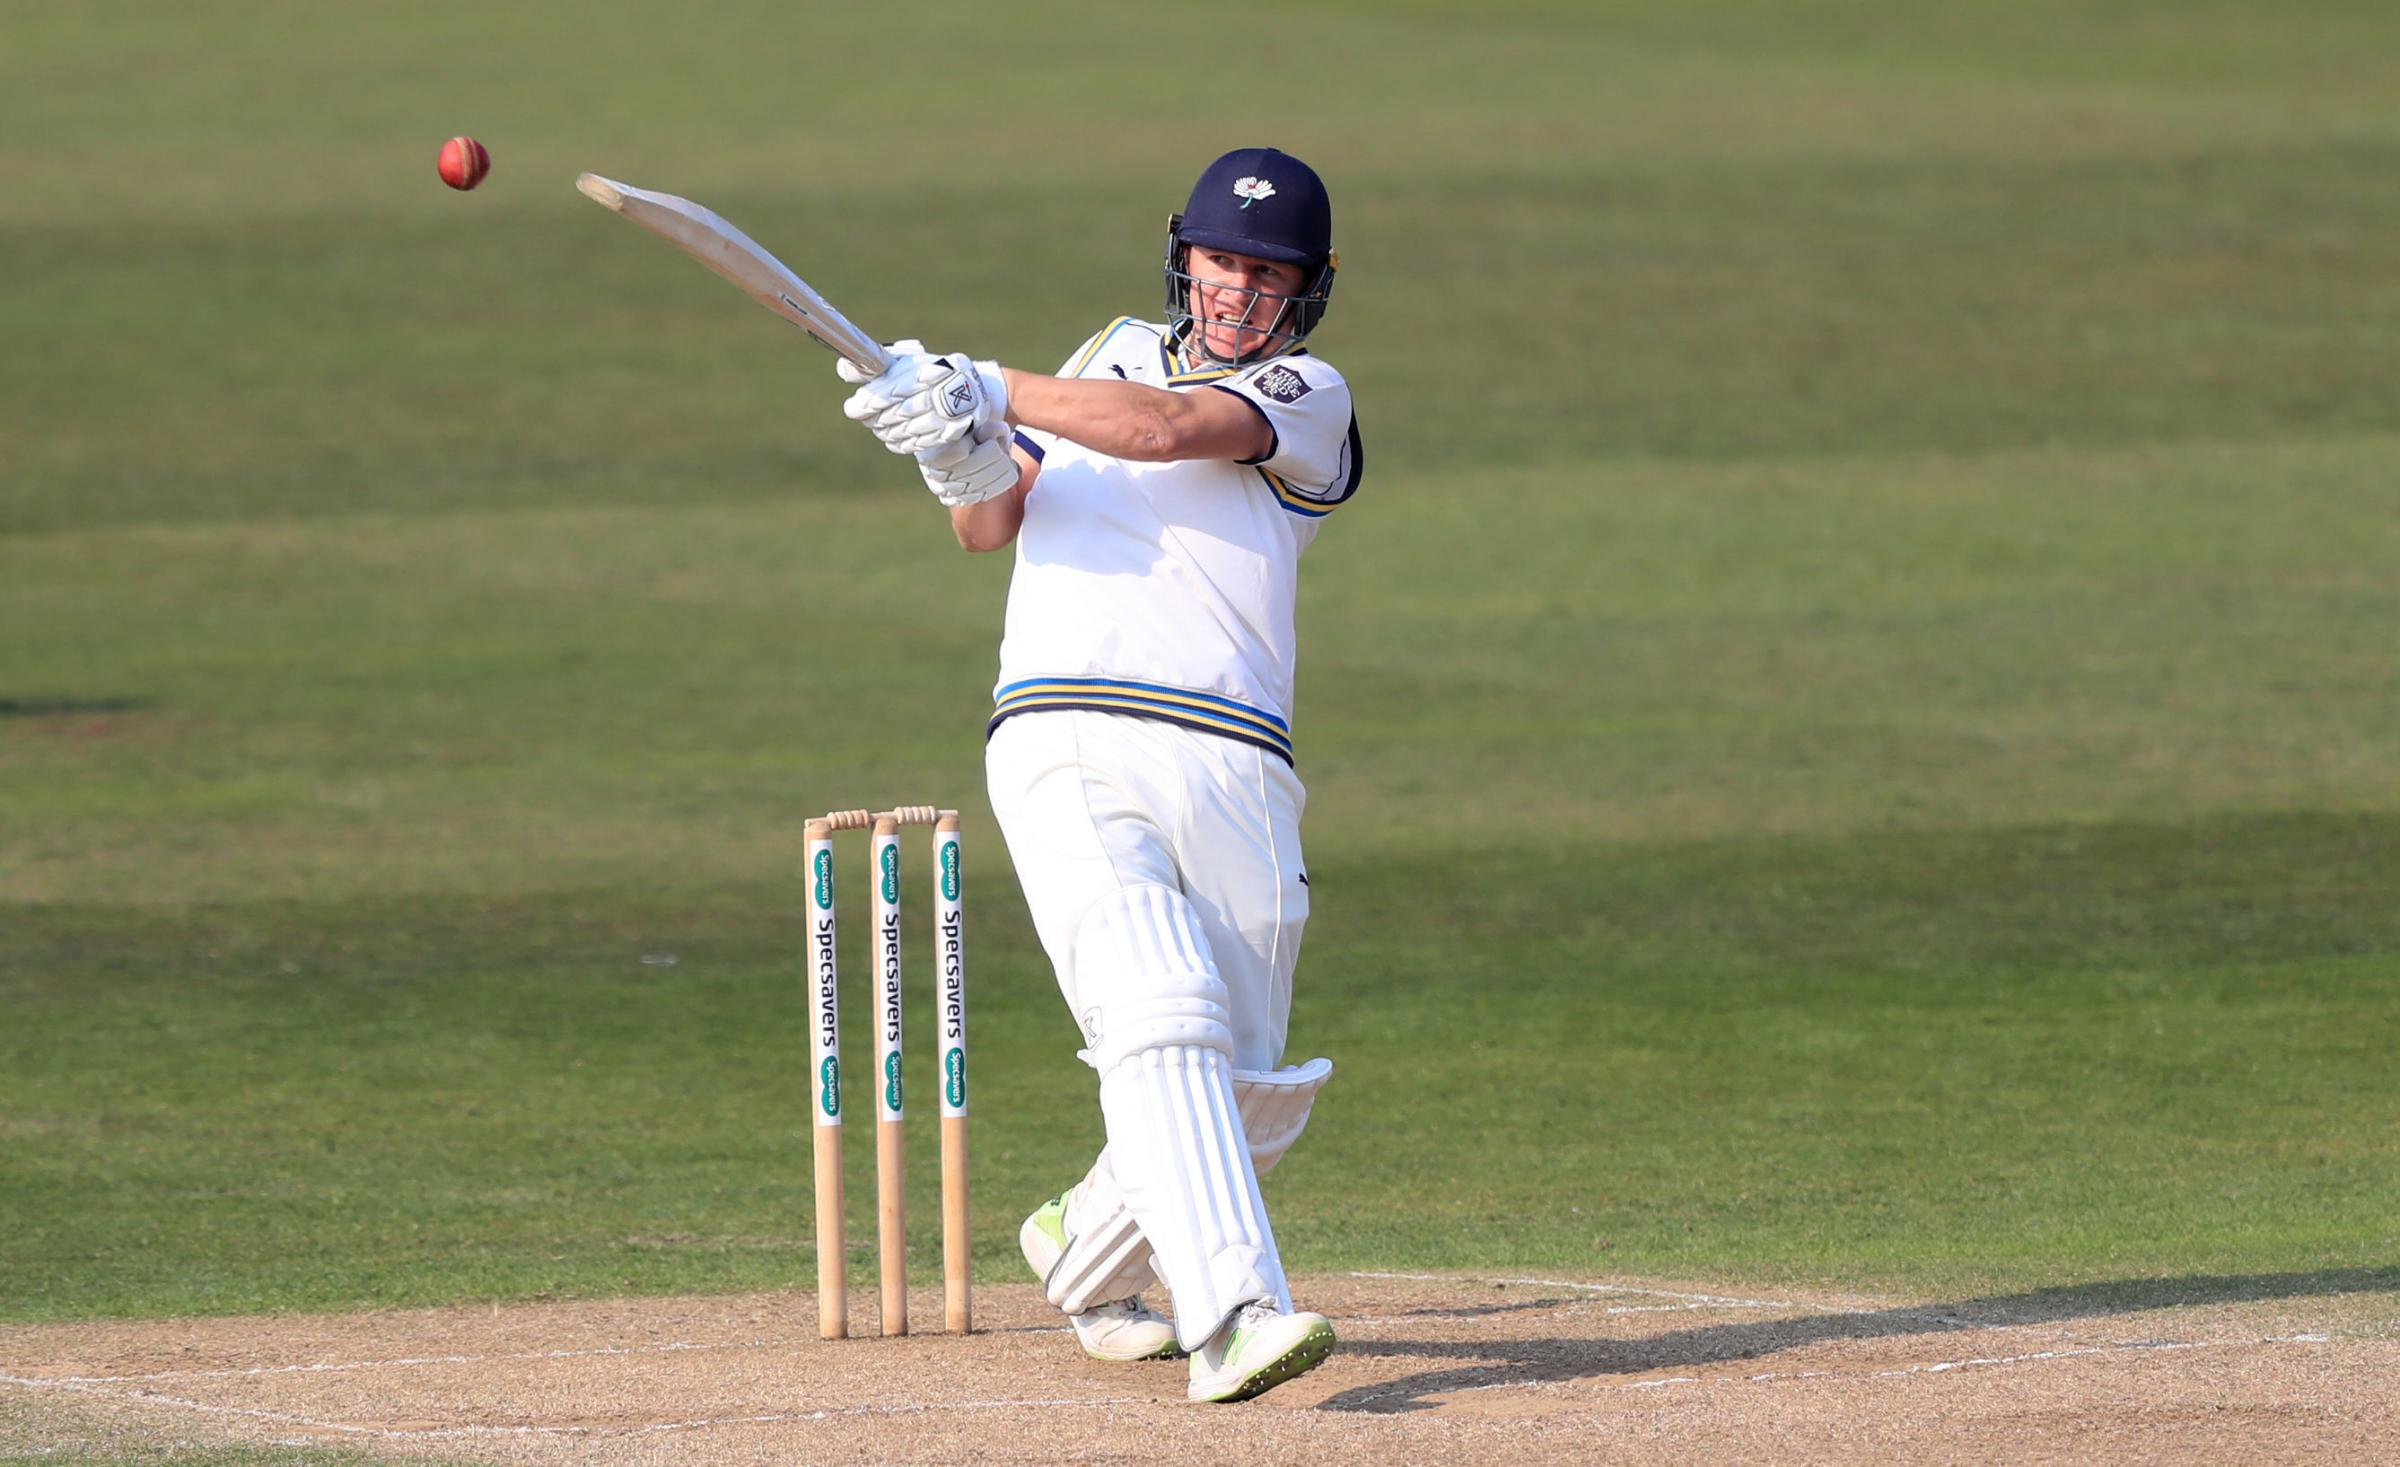 Yorkshire's Gary Ballance fired an unbeaten century before lunch in his side's Specsavers County Championship Division One match against Kent at Canterbury